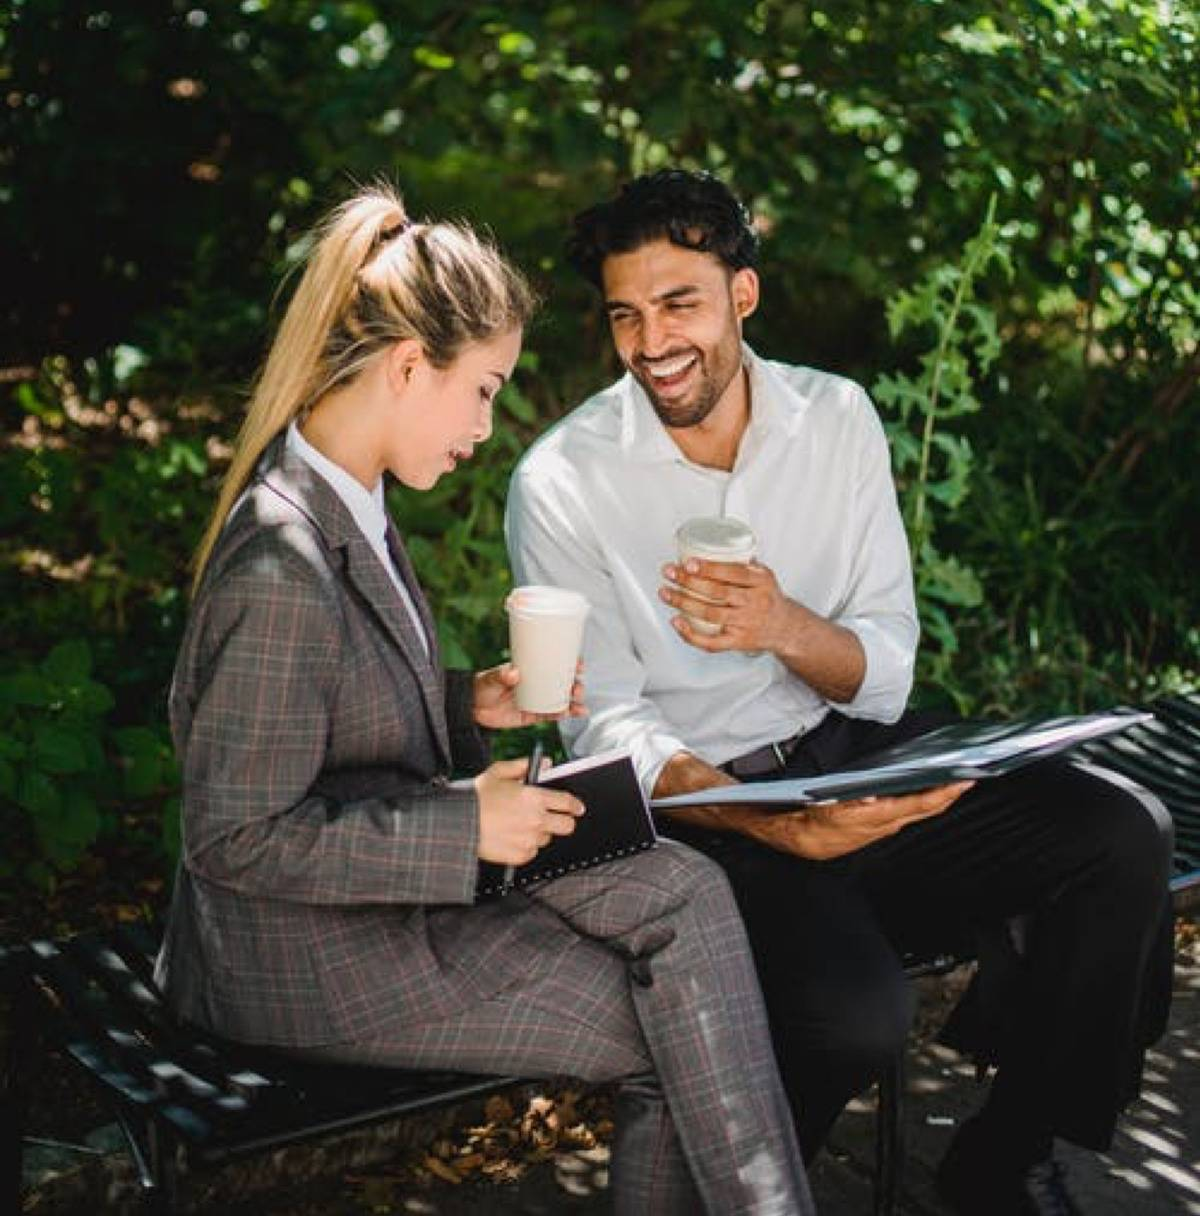 man and woman sitting outside together holding coffee